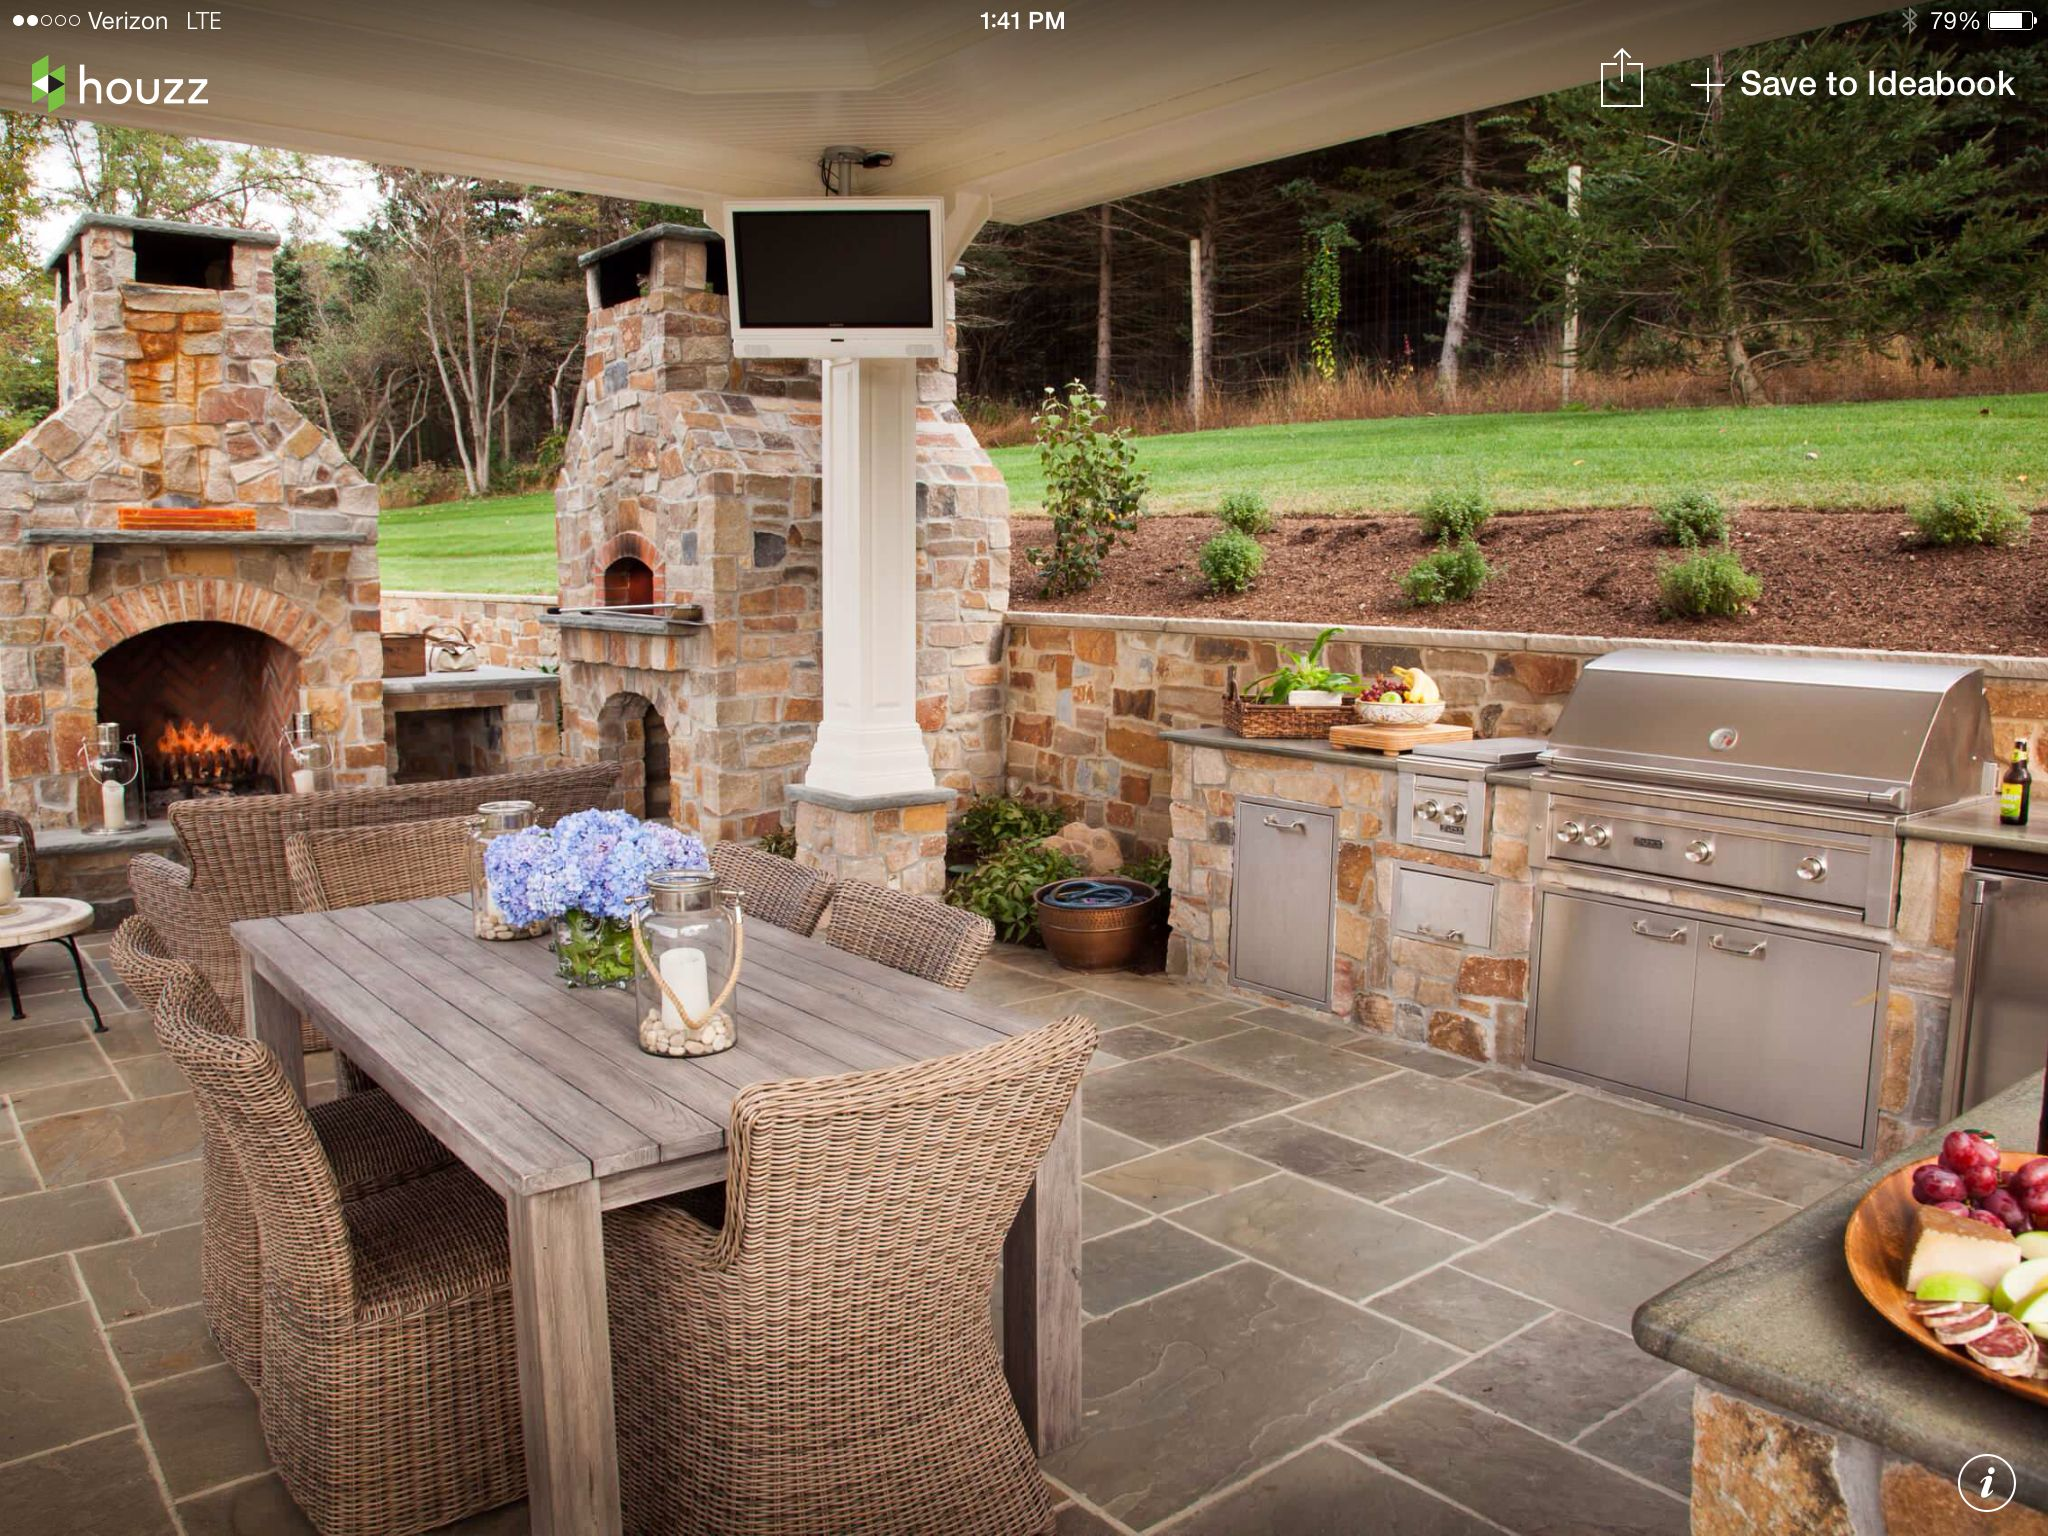 Outdoor Kitchen Designs Featuring Pizza Ovens, Fireplaces And Other Cool  Accessories. Tv Design Could Be Better